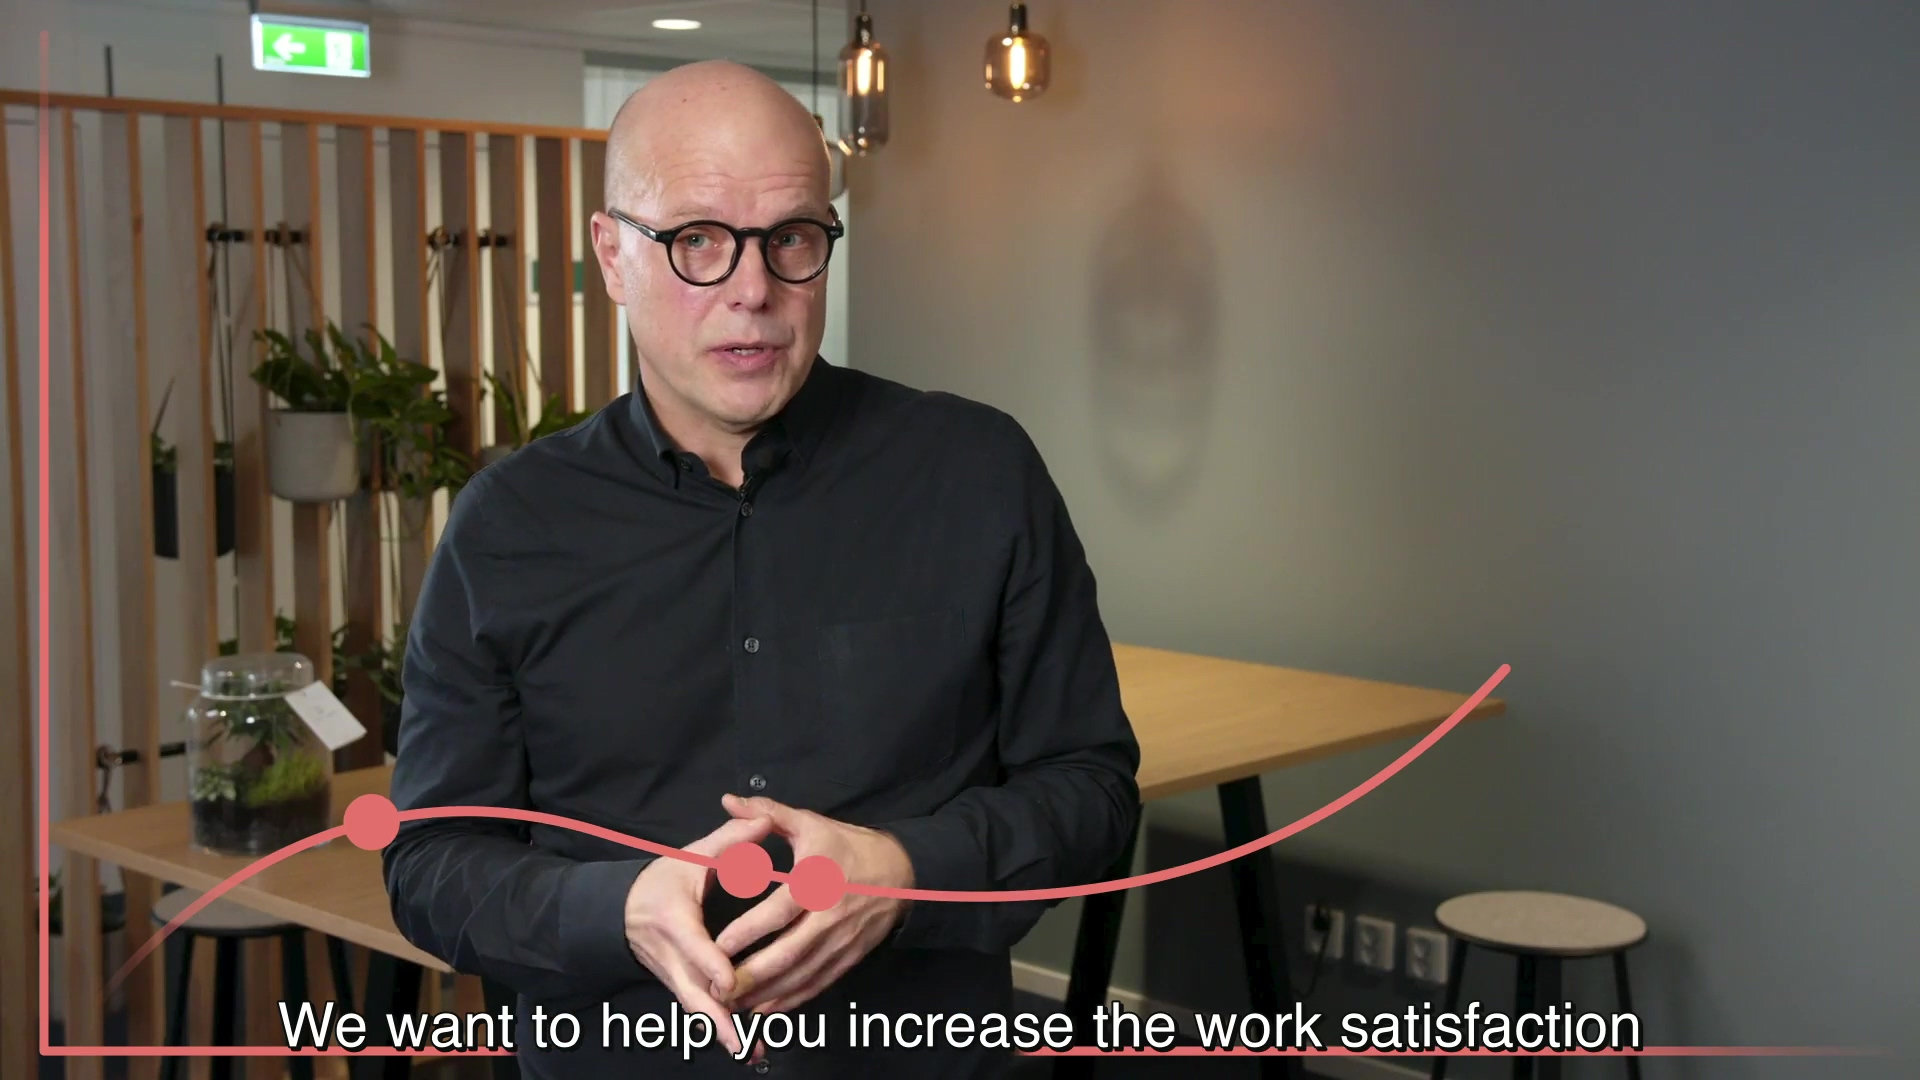 Fredrik video + Subtitles